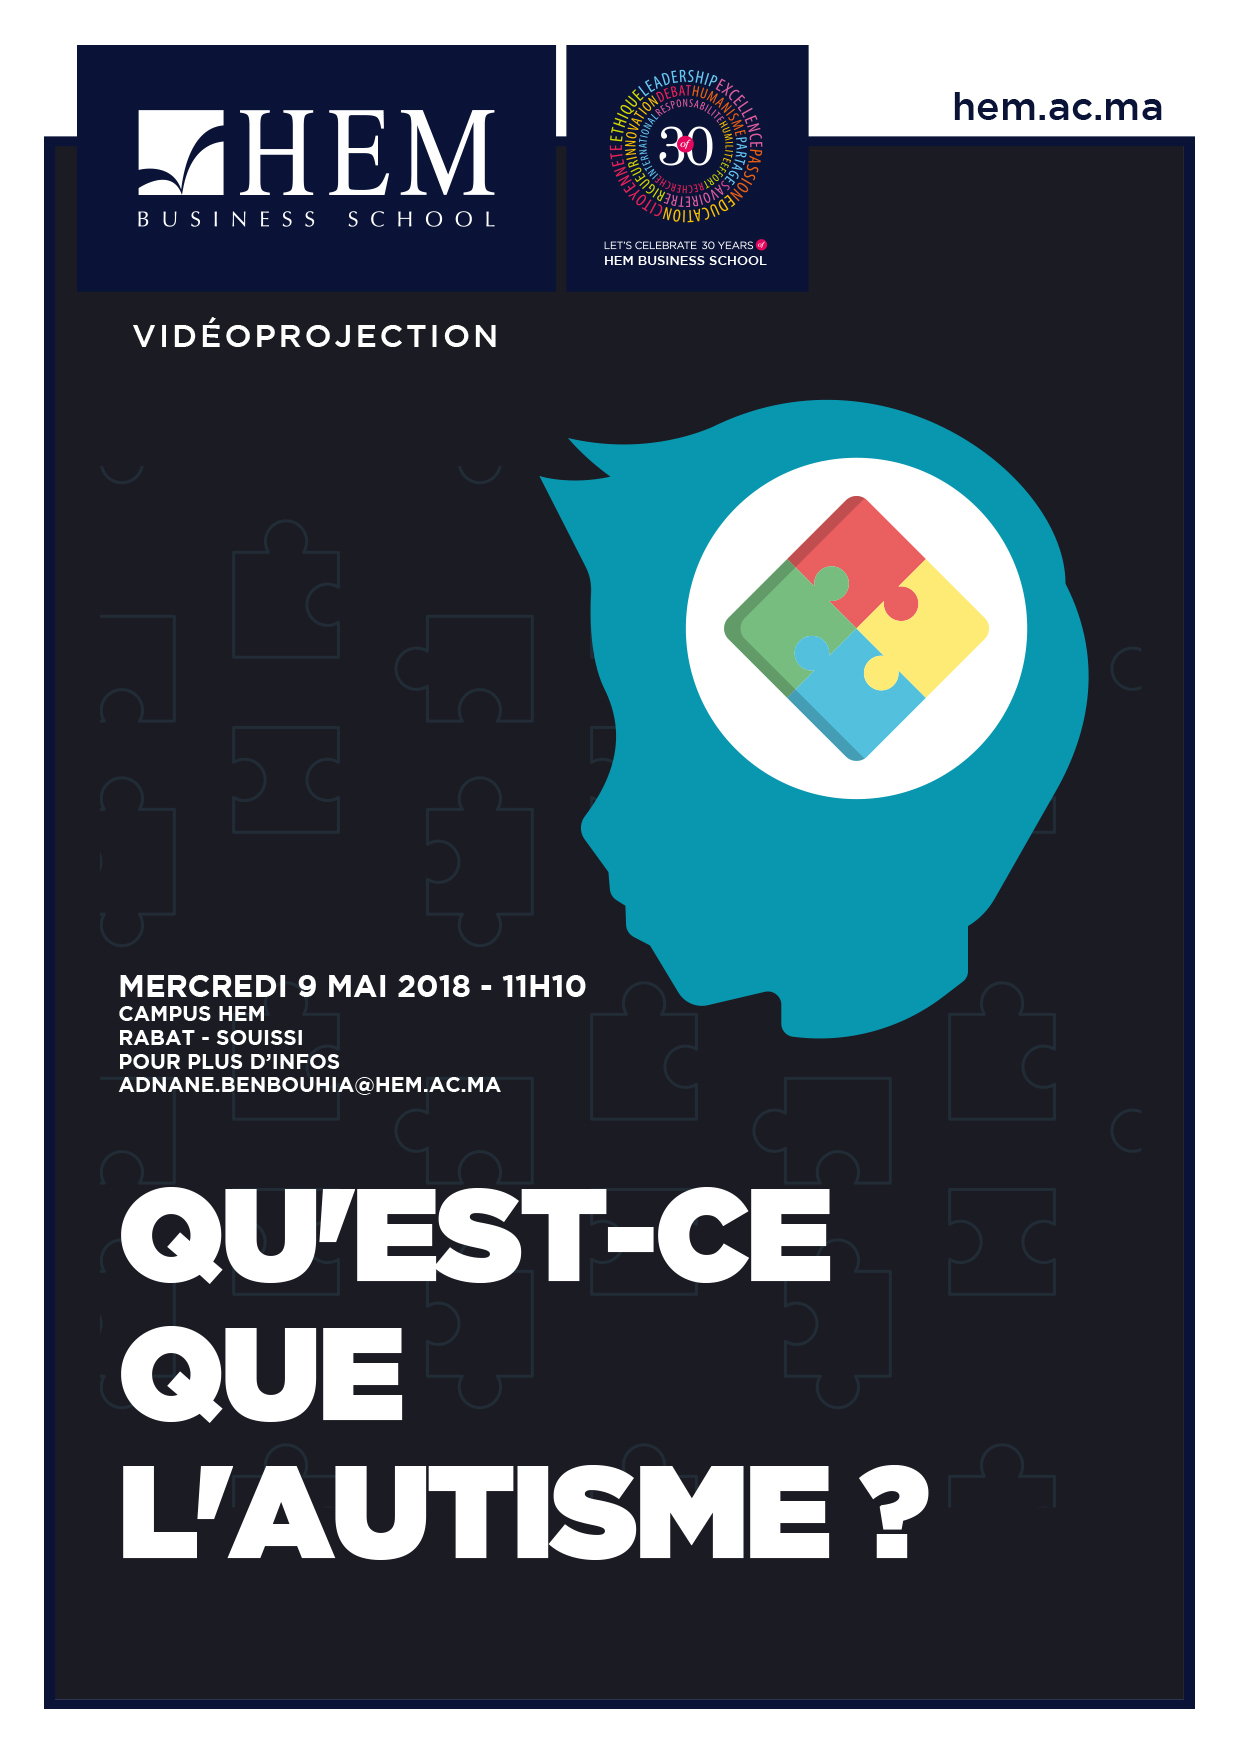 video-projection-quest-ce-que-lautisme